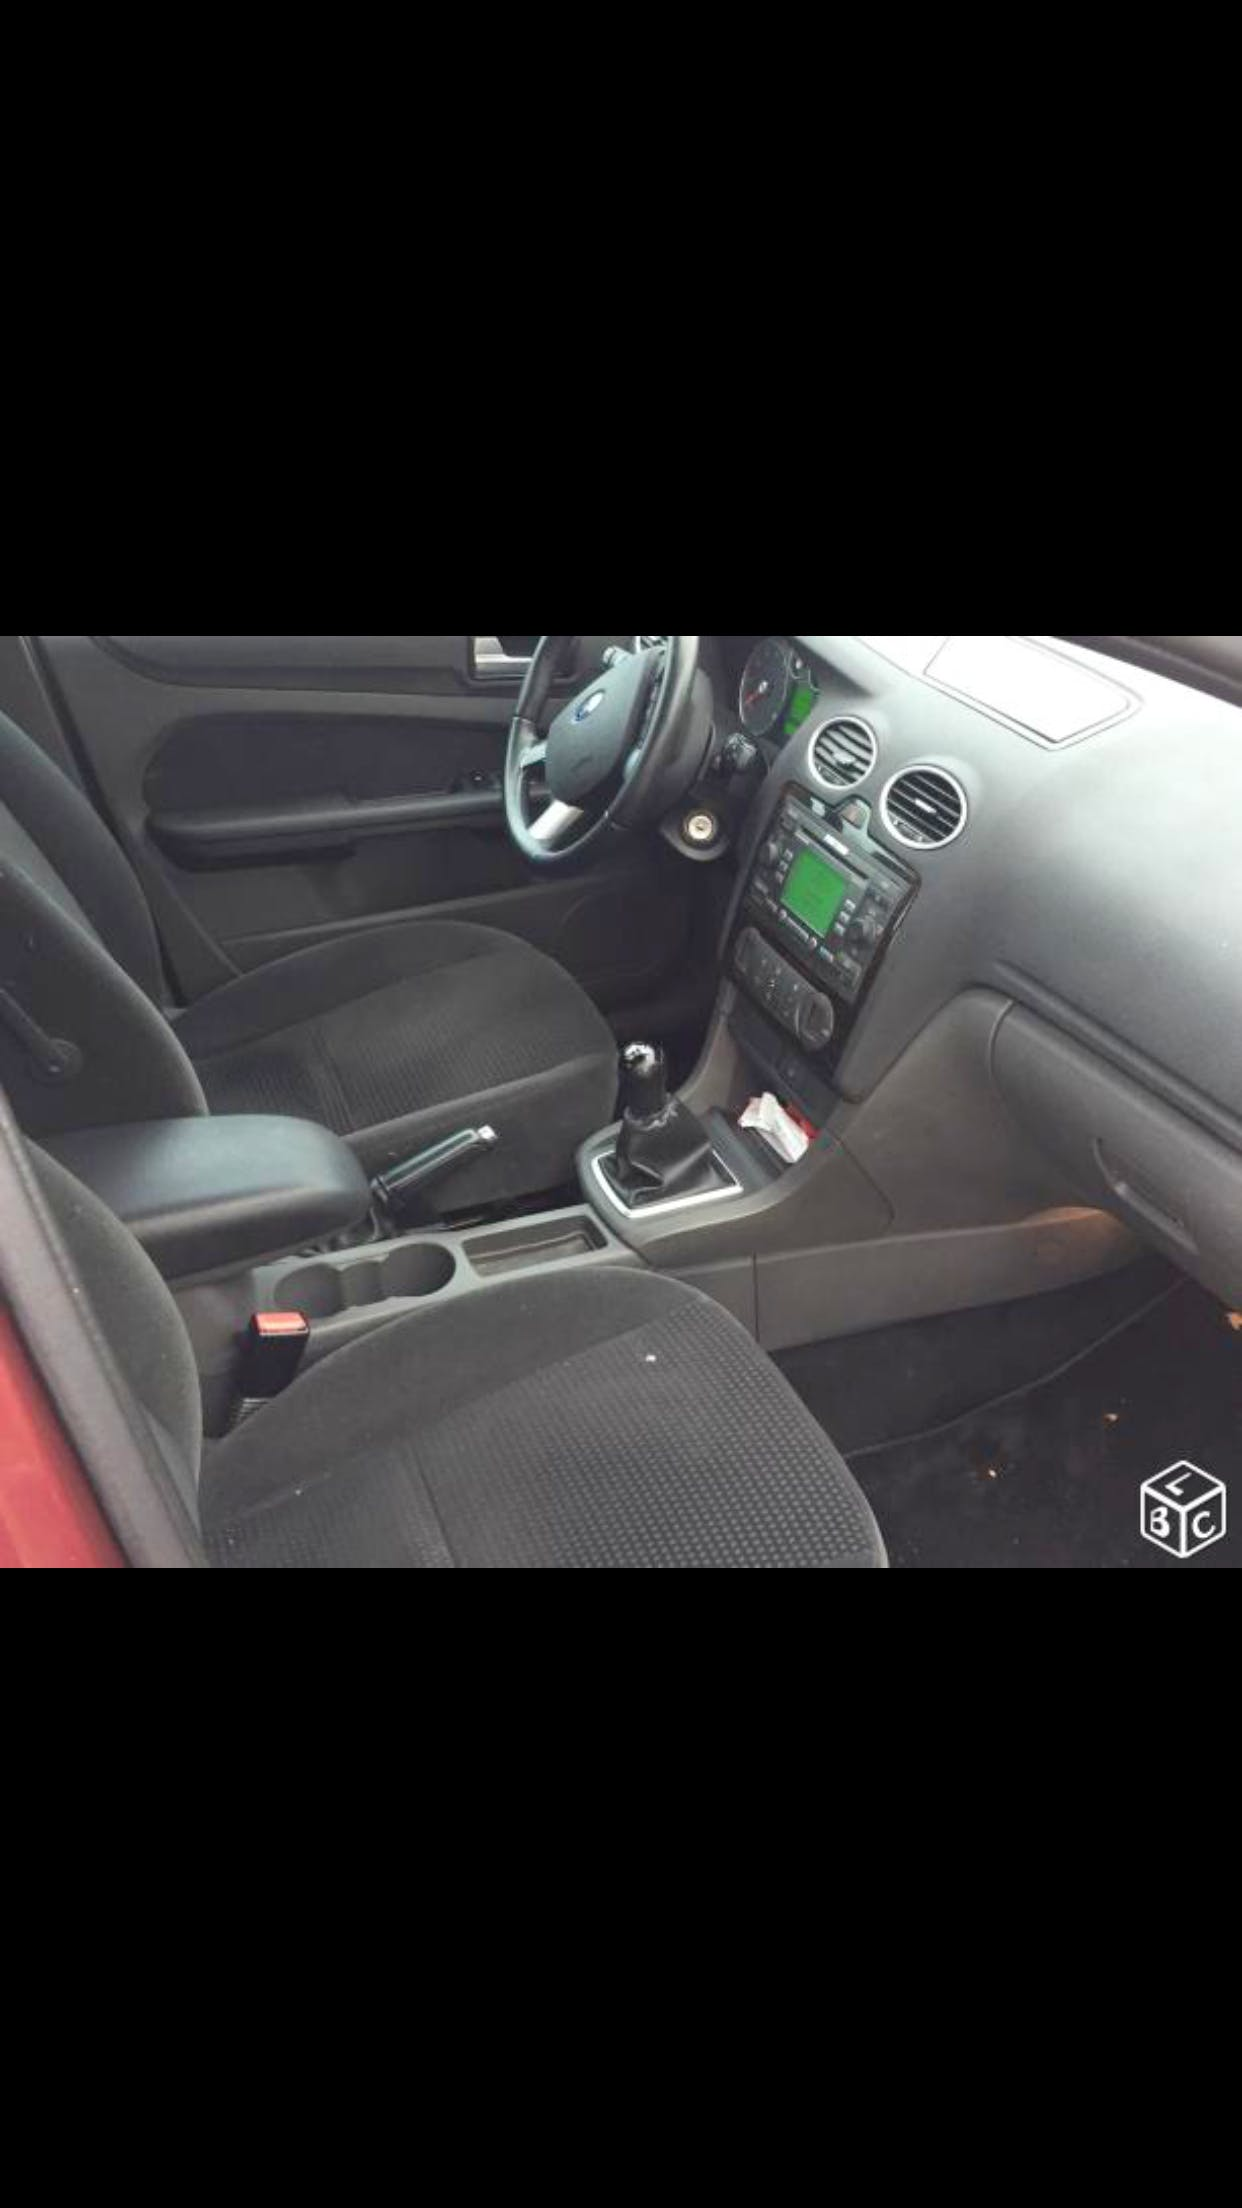 Ford Focus 1.6 ghia avec Climatisation